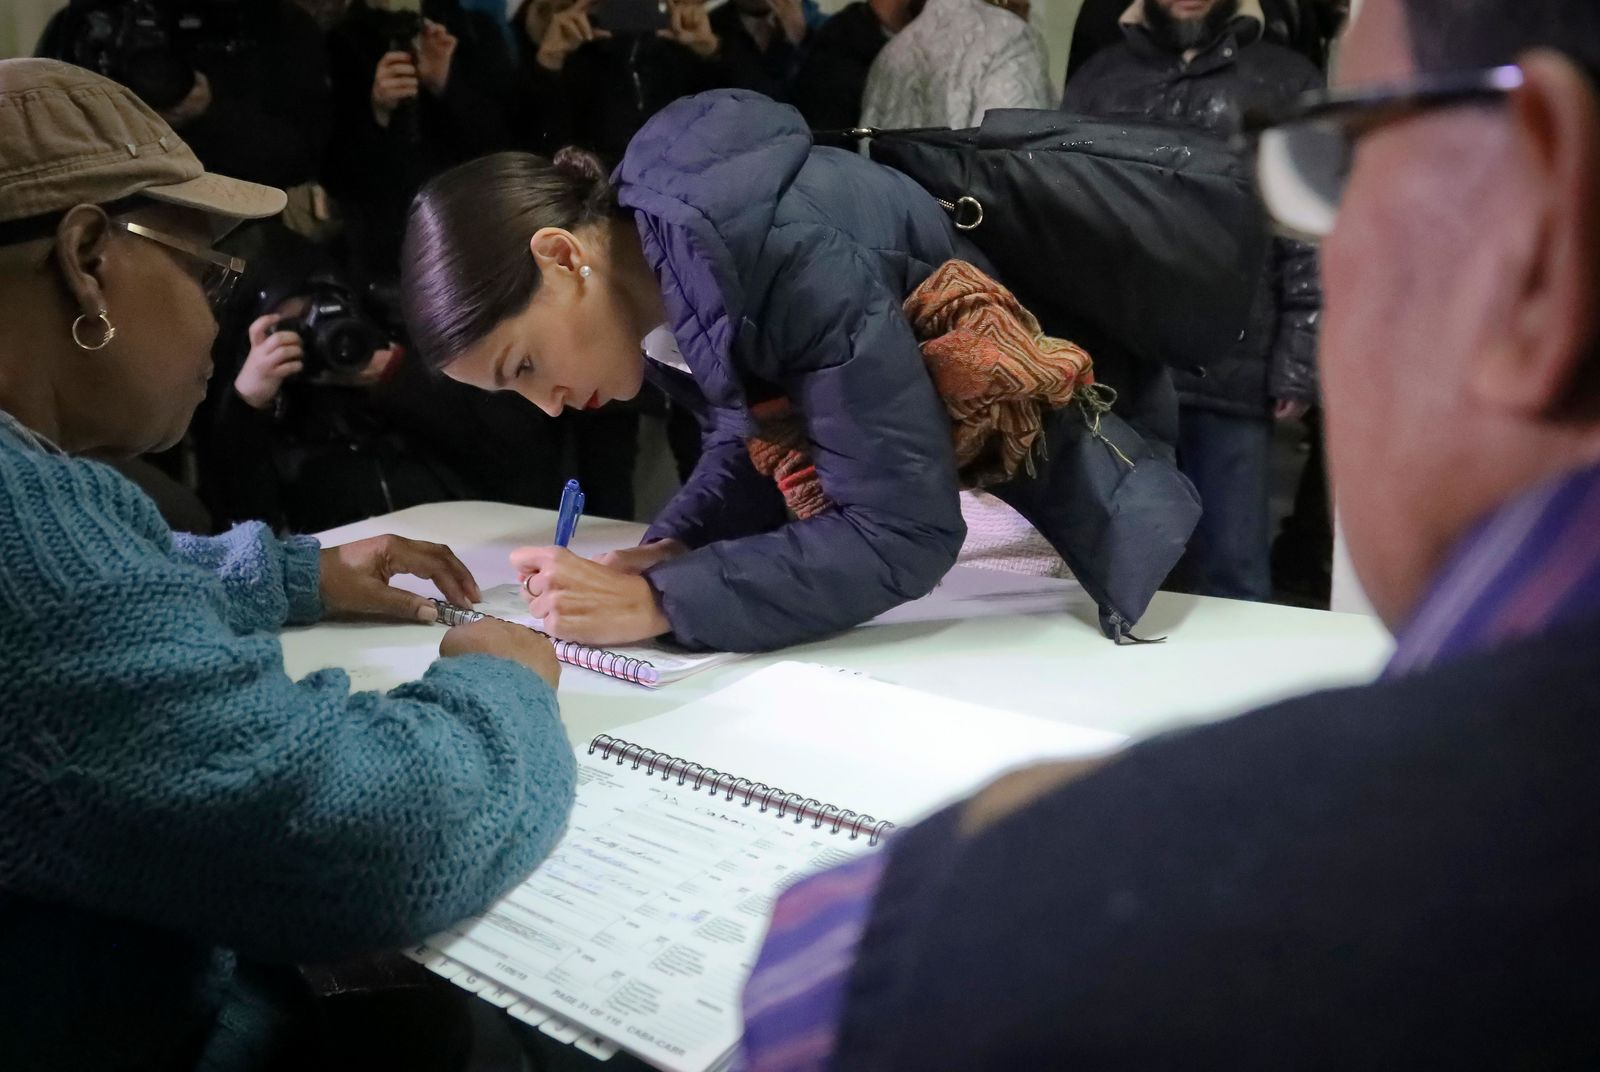 New York Democratic congressional candidate Alexandria Ocasio-Cortez, center, signs a register before voting, Tuesday Nov. 6, 2018, in the Parkchester community in the Bronx, N.Y. (AP Photo/Bebeto Matthews)